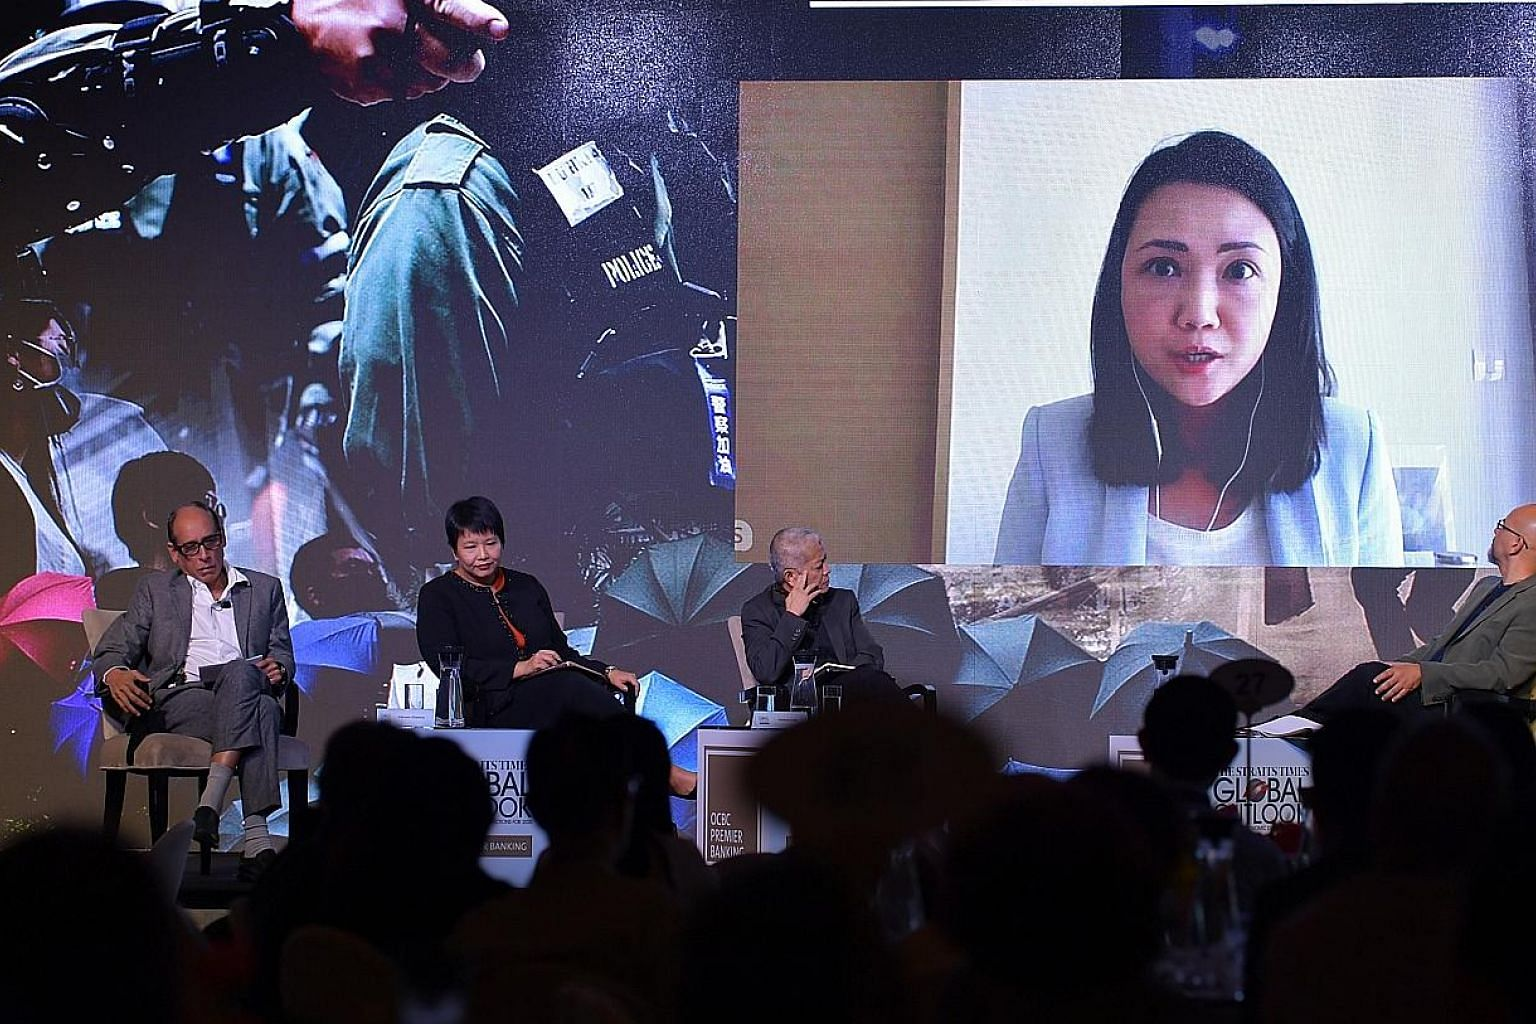 ST's Hong Kong correspondent Claire Huang, joining the panel at The Straits Times Global Outlook Forum via video conference yesterday. On stage were (from left) ST associate editor Vikram Khanna, OCBC Bank's head of treasury research and strategy Sel